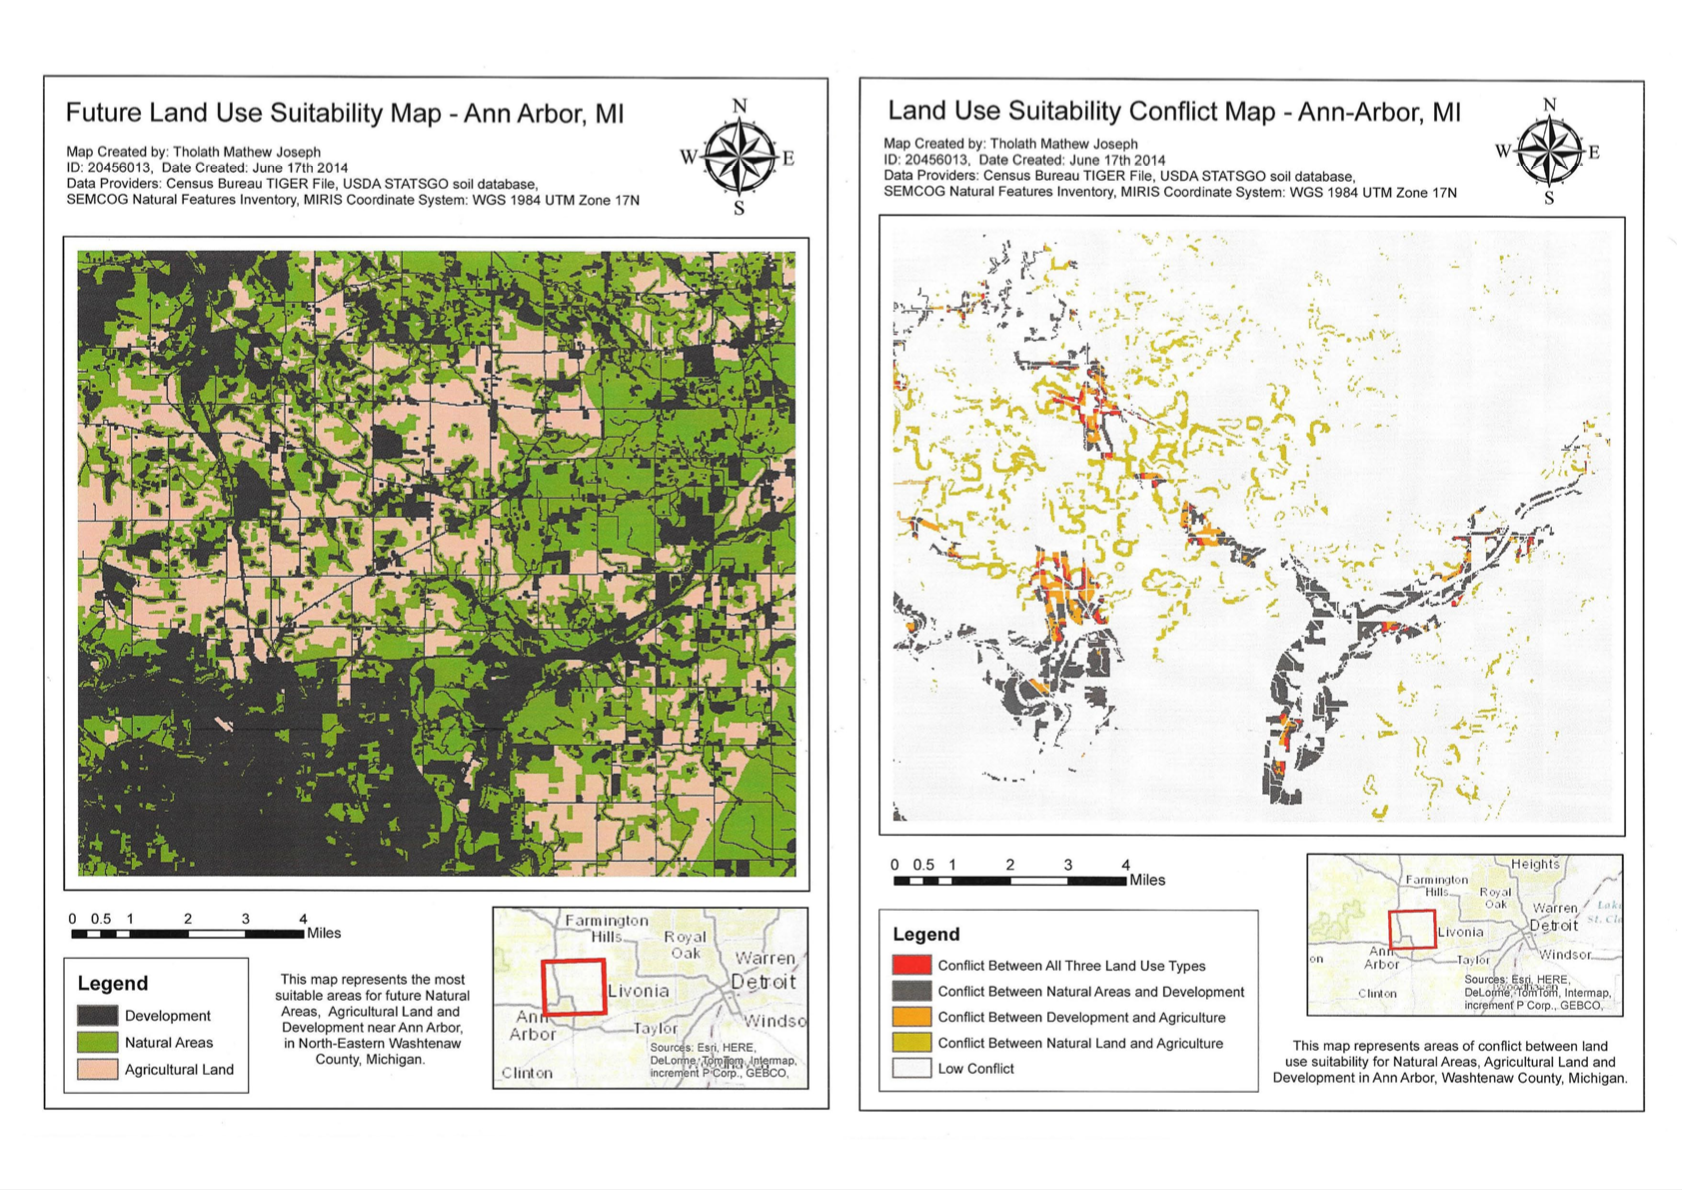 Left: Suitability Map using the Highest Point Method,  Right: Conflict map for the 3 land use types